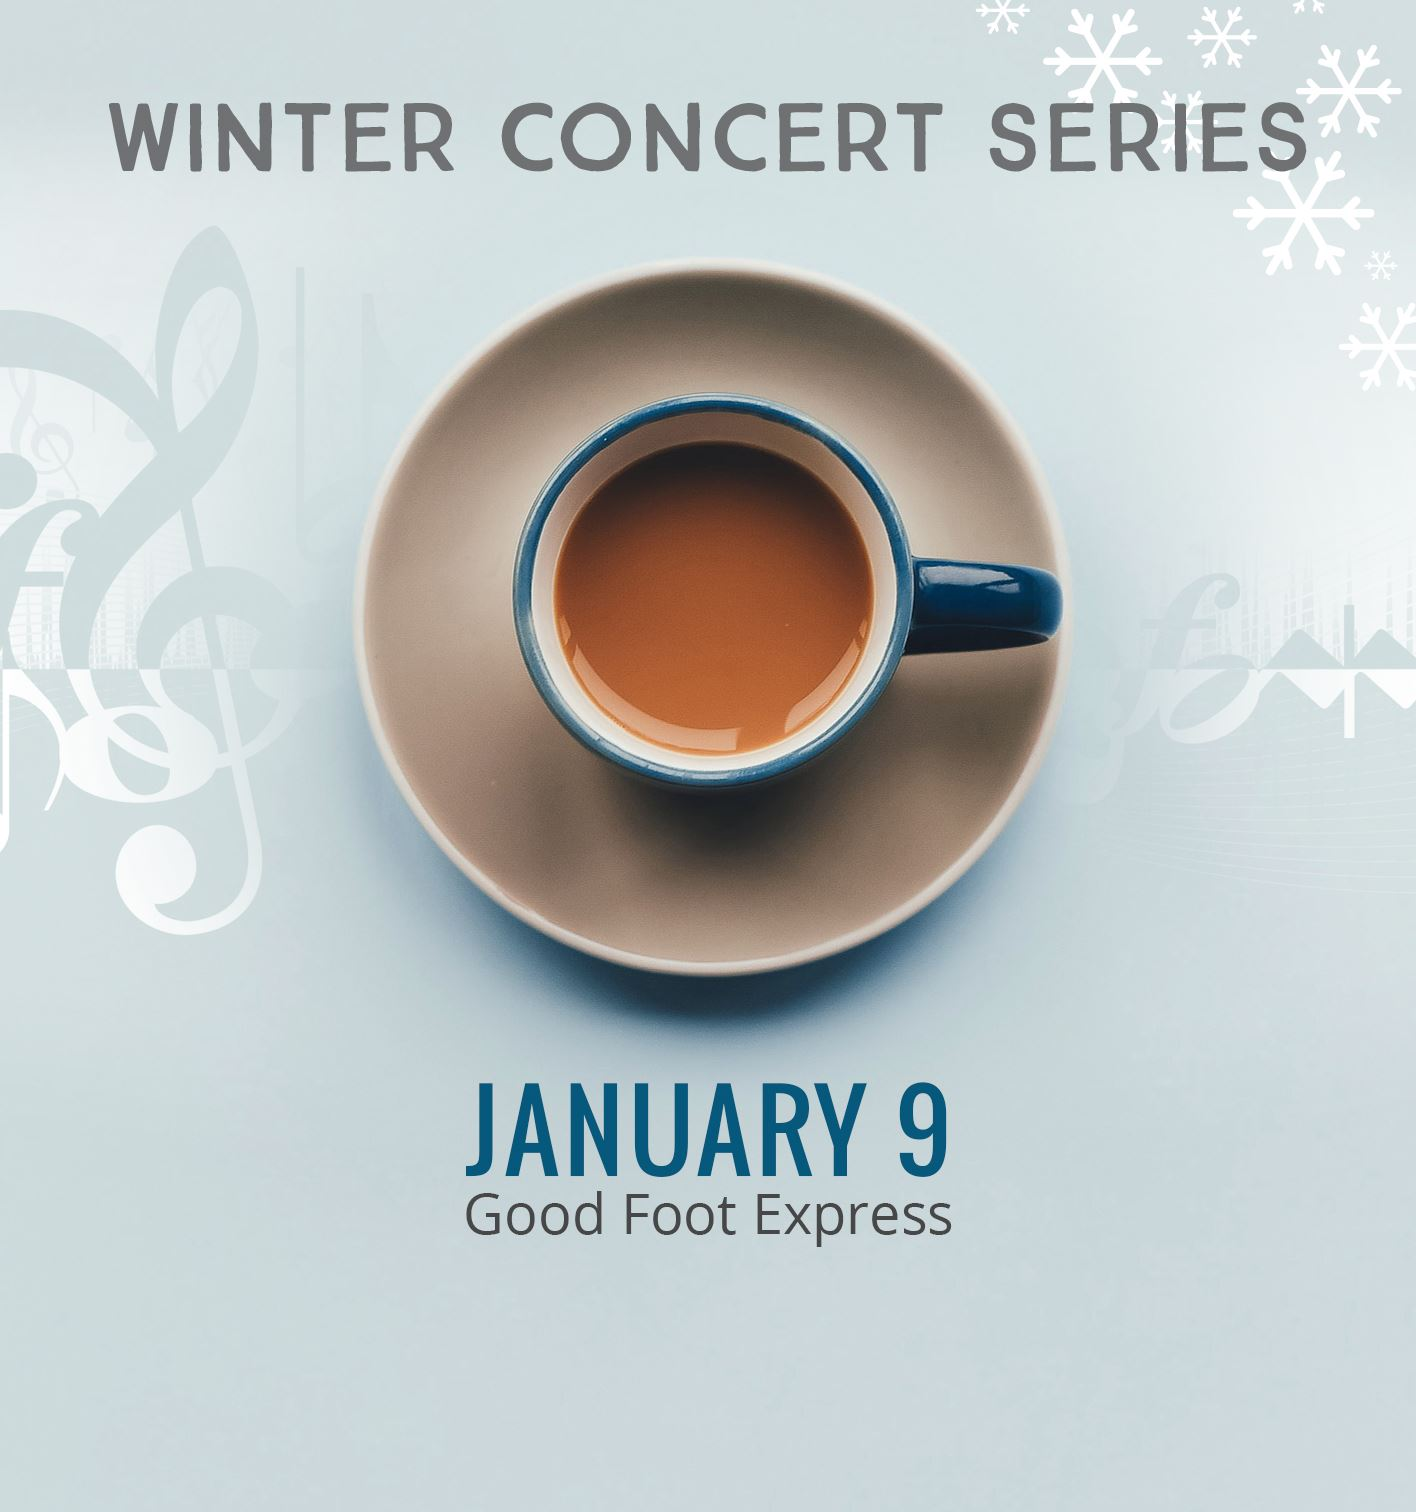 Winter Concert Series - Good Foot Express on January 9